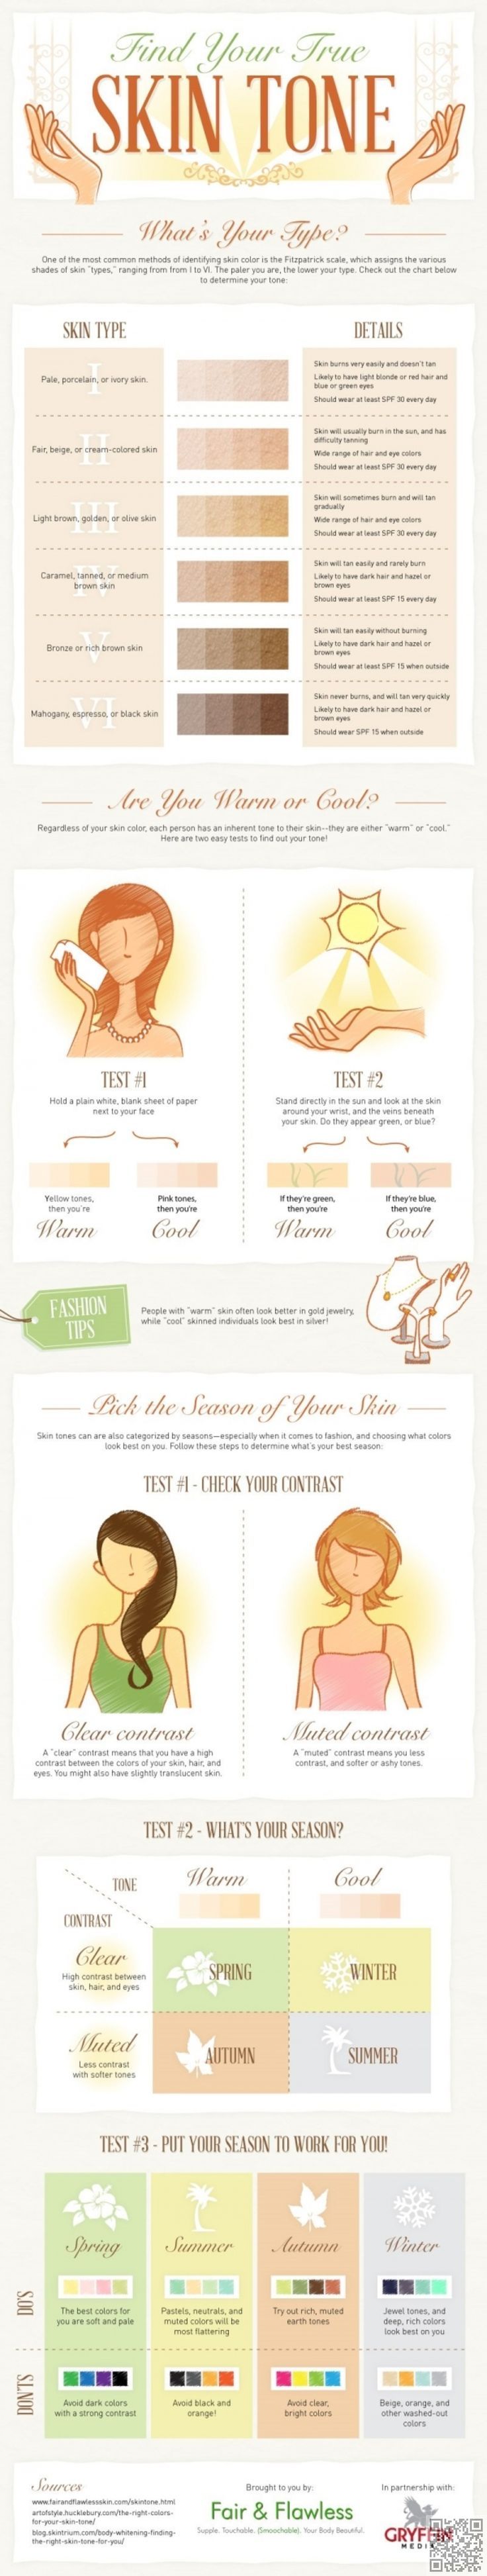 13. How to Find Your True Skin Tone - Dewy Skin #Trend: 29 Infographics to Help You #Highlight Your Way to Perfection ... → Skincare #Skincare